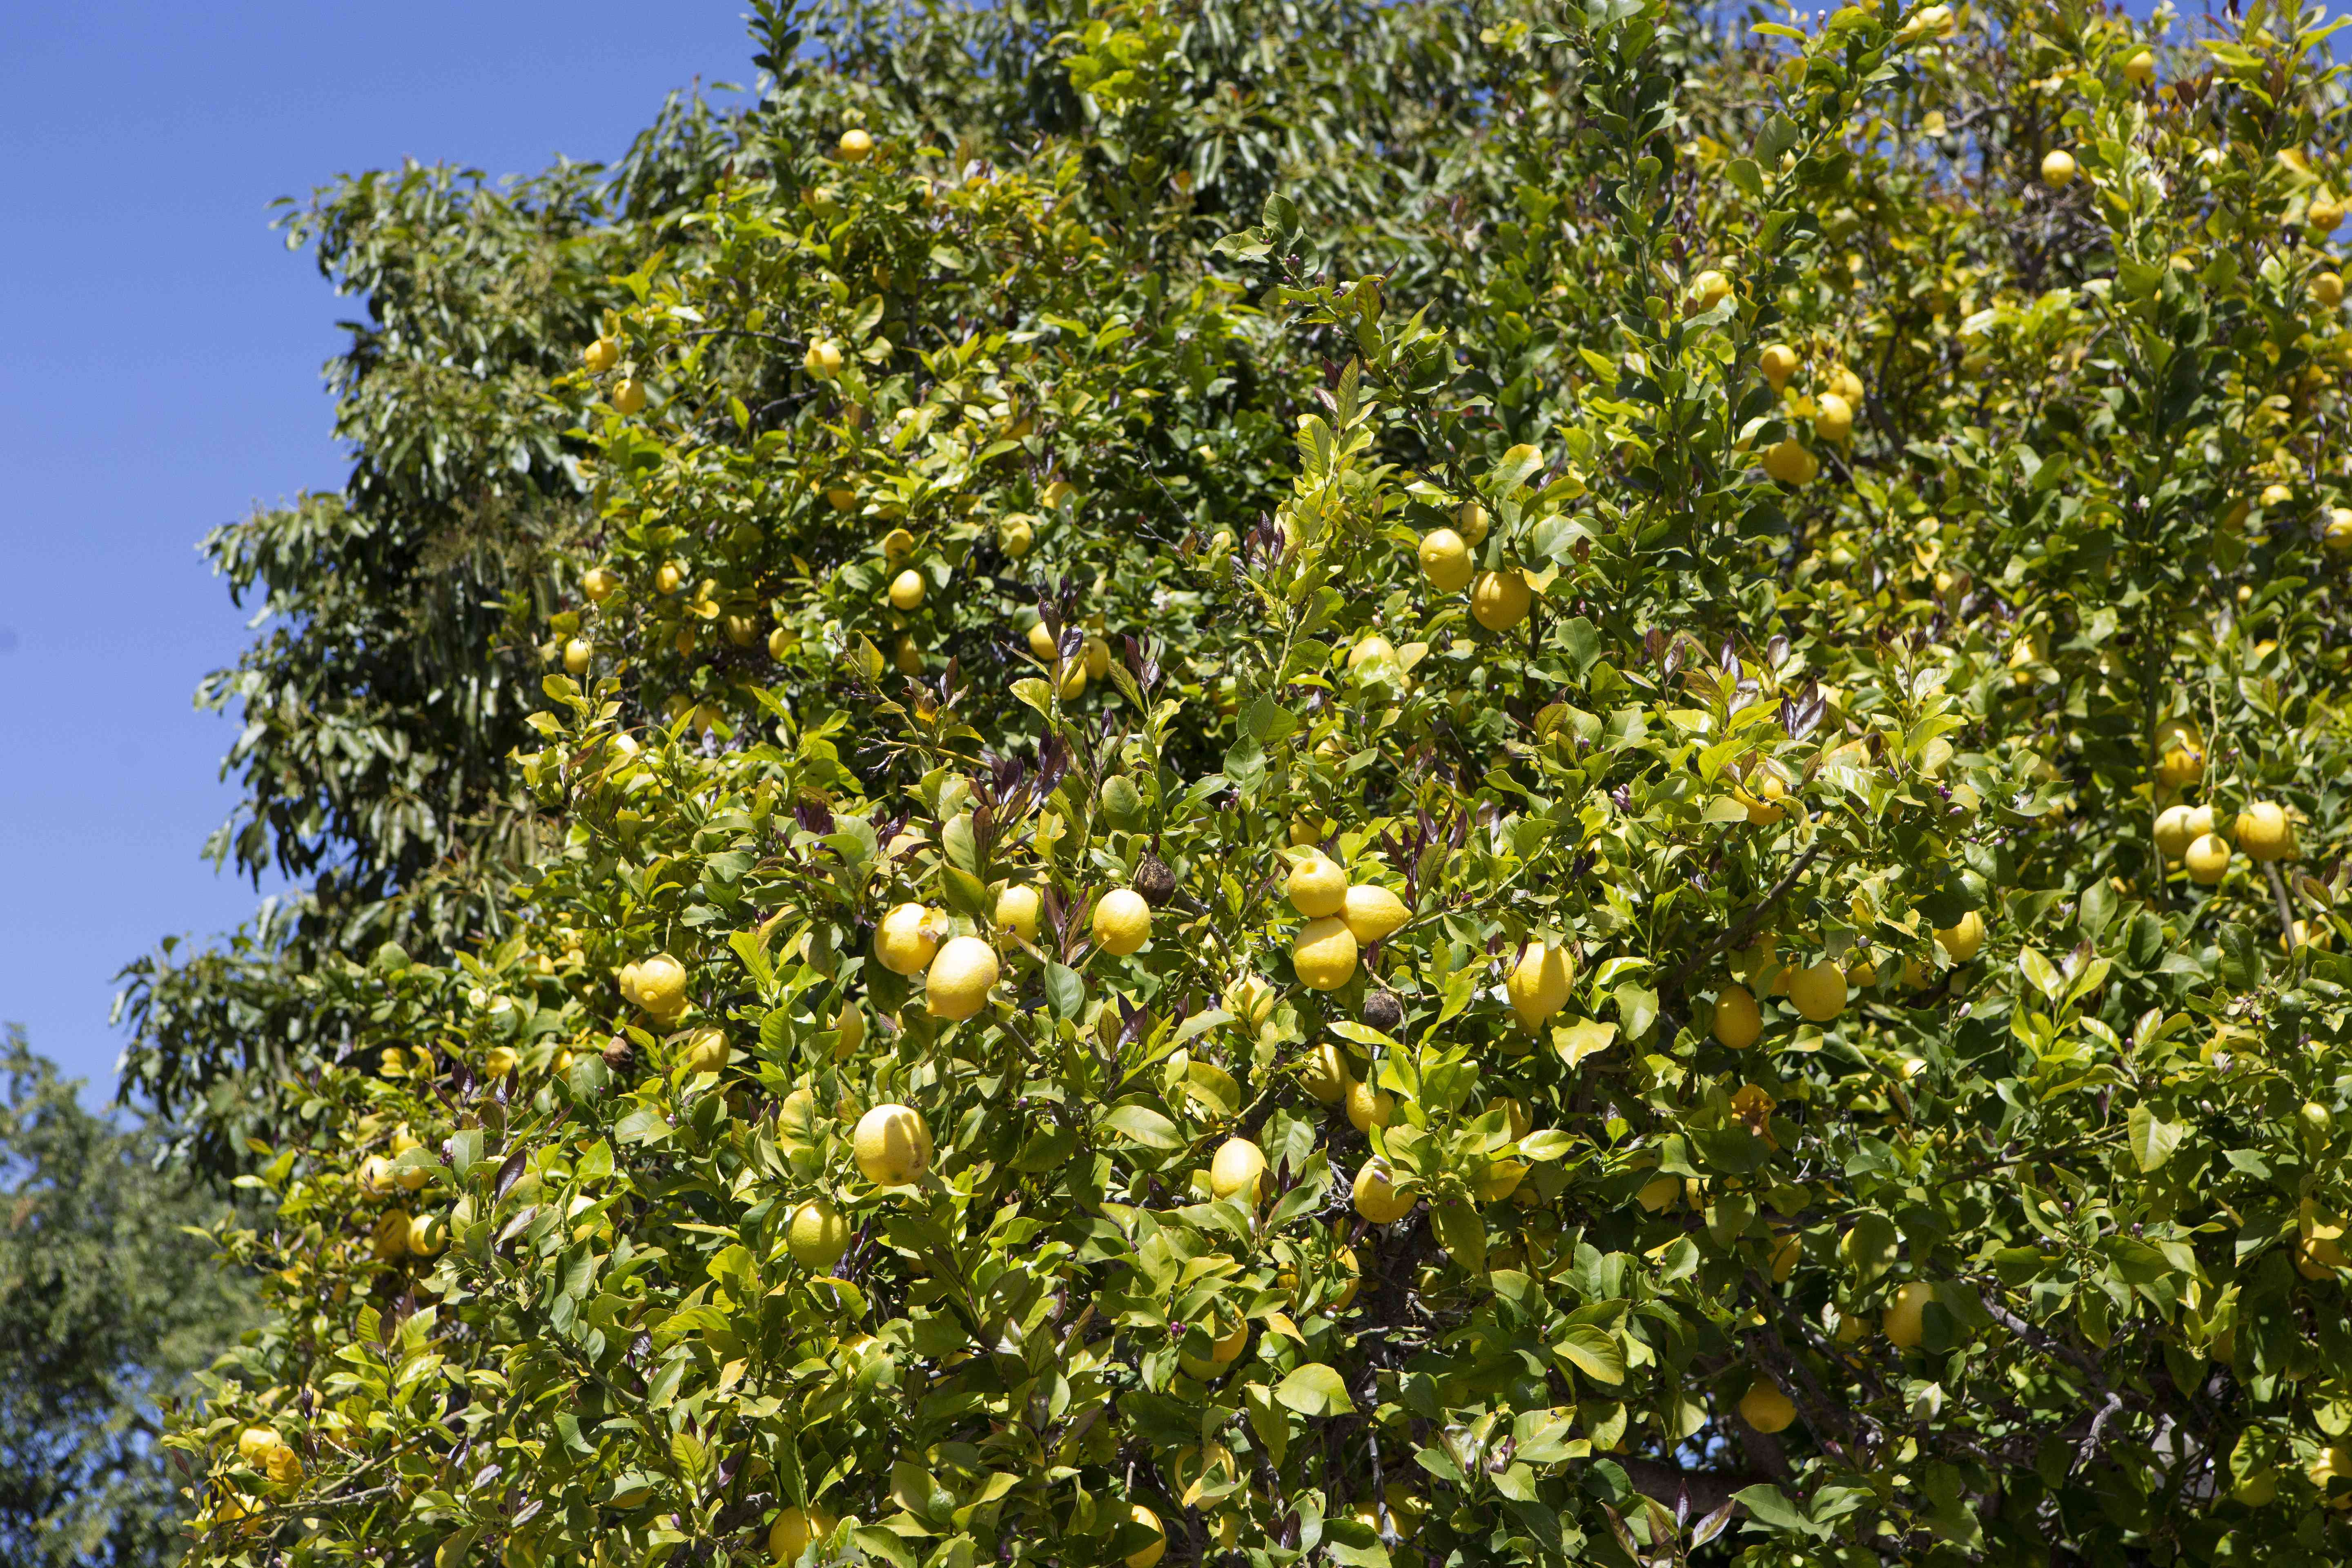 Lisbon lemon tree with yellow lemons hanging off branches in sunlight